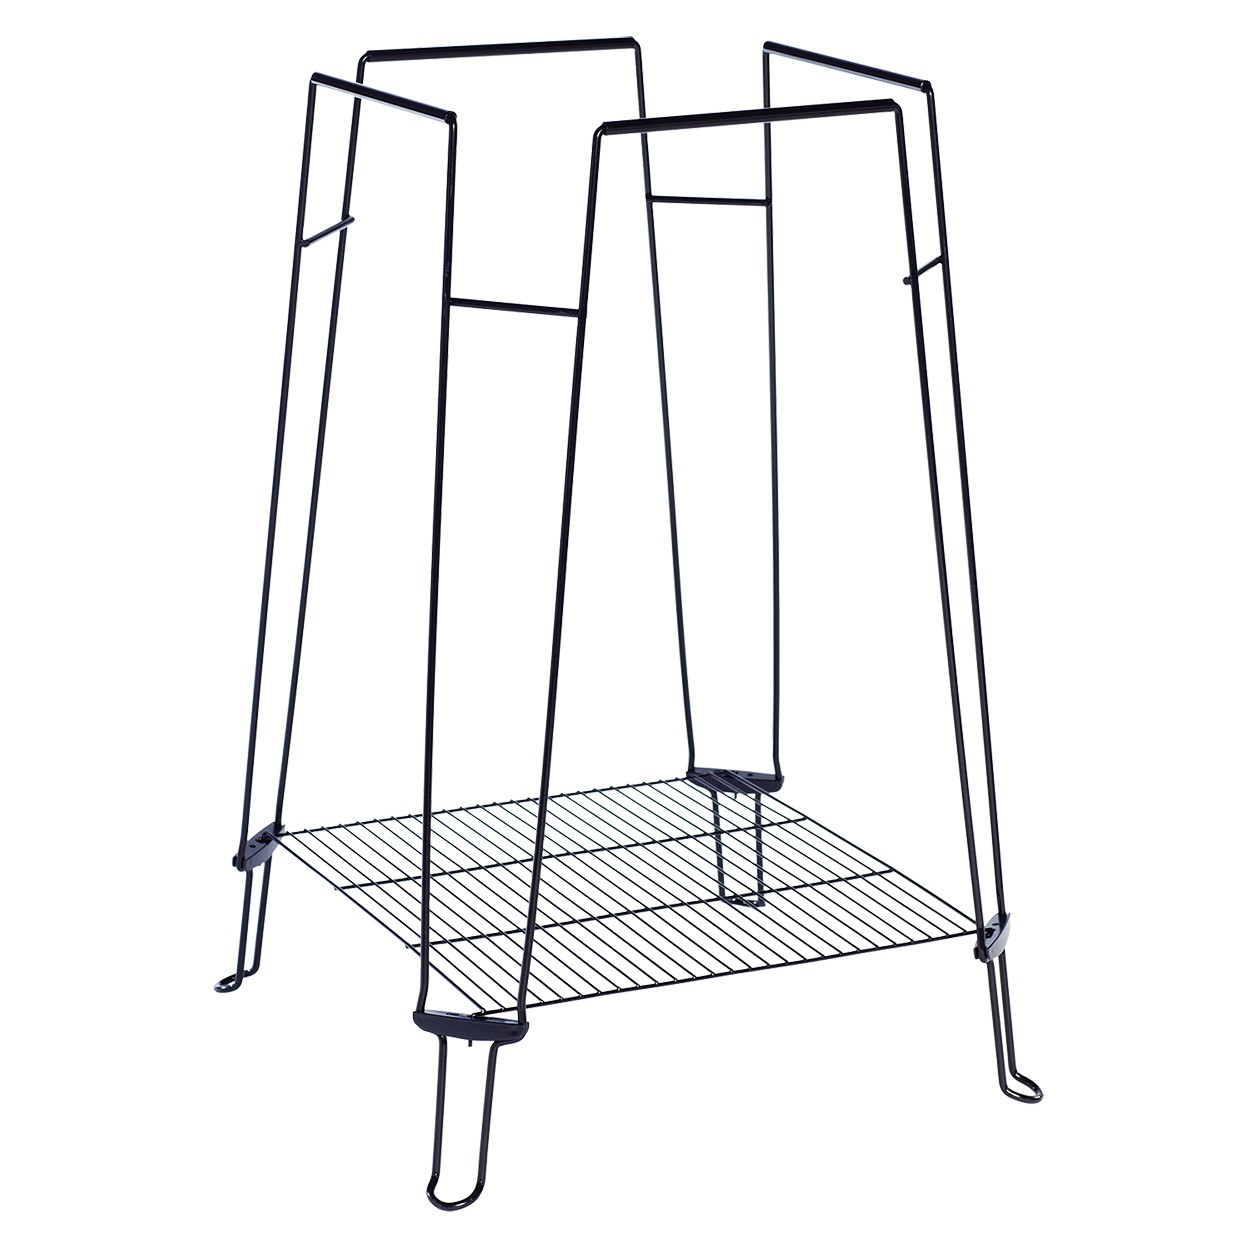 Prevue Hendryx Clean Life Bird Cage Stands